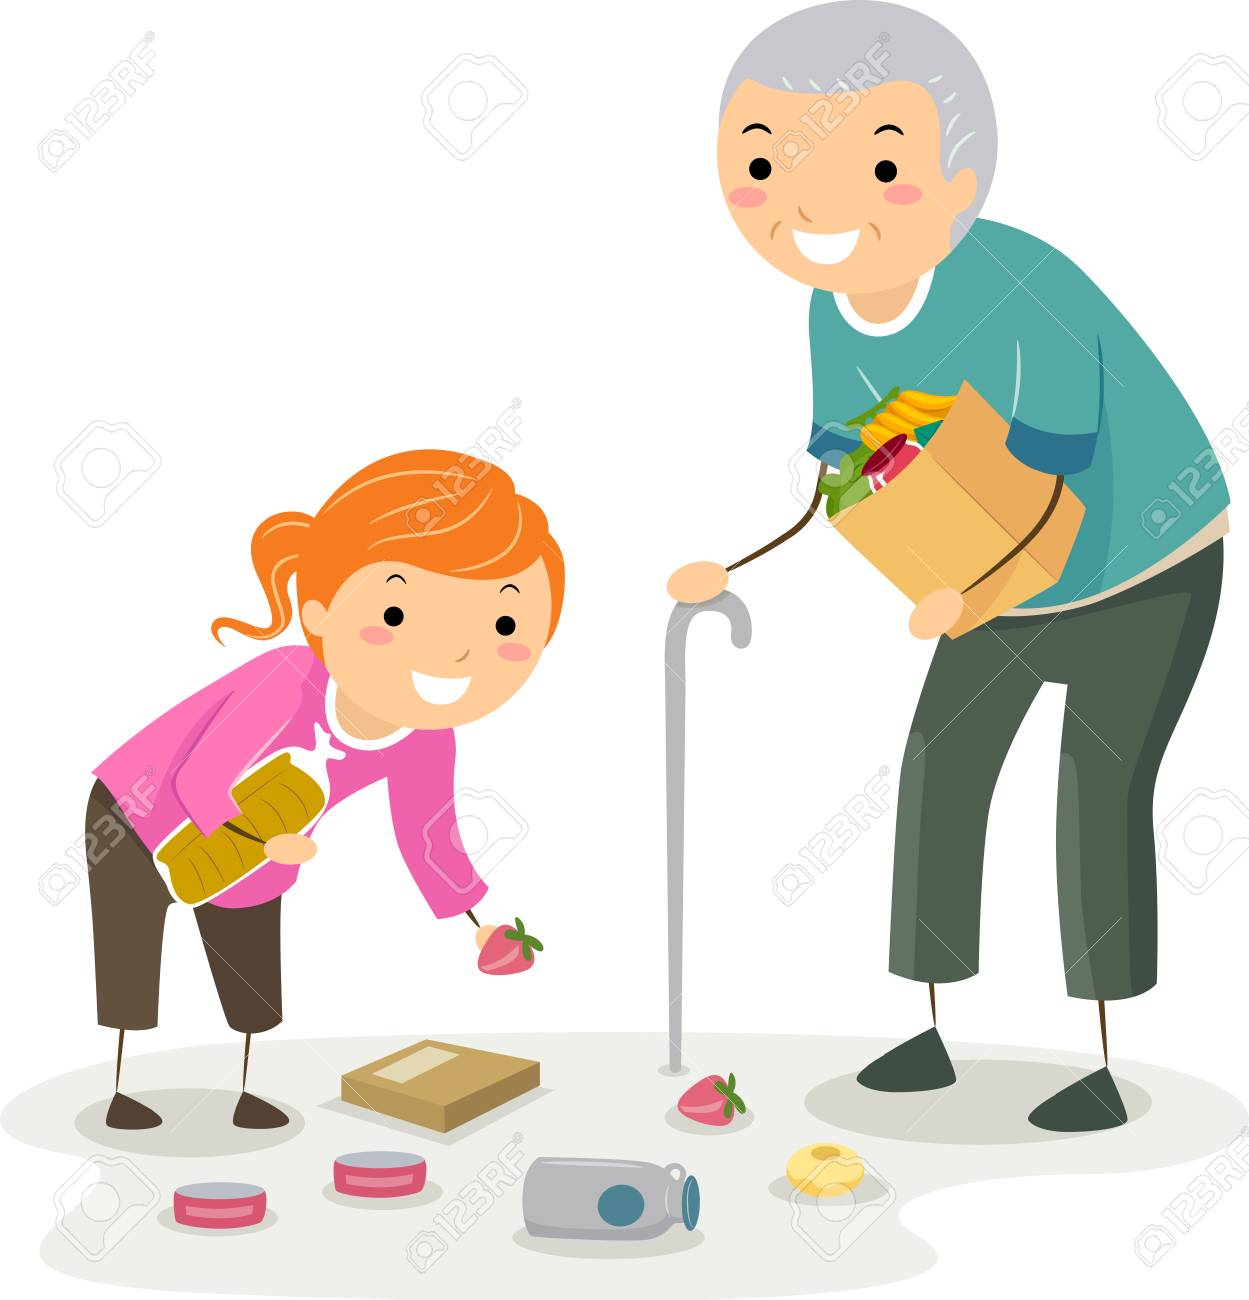 Illustration of a Stickman Kid Girl Helping a Senior Man Pick Up Fallen Grocery Items - 103446898